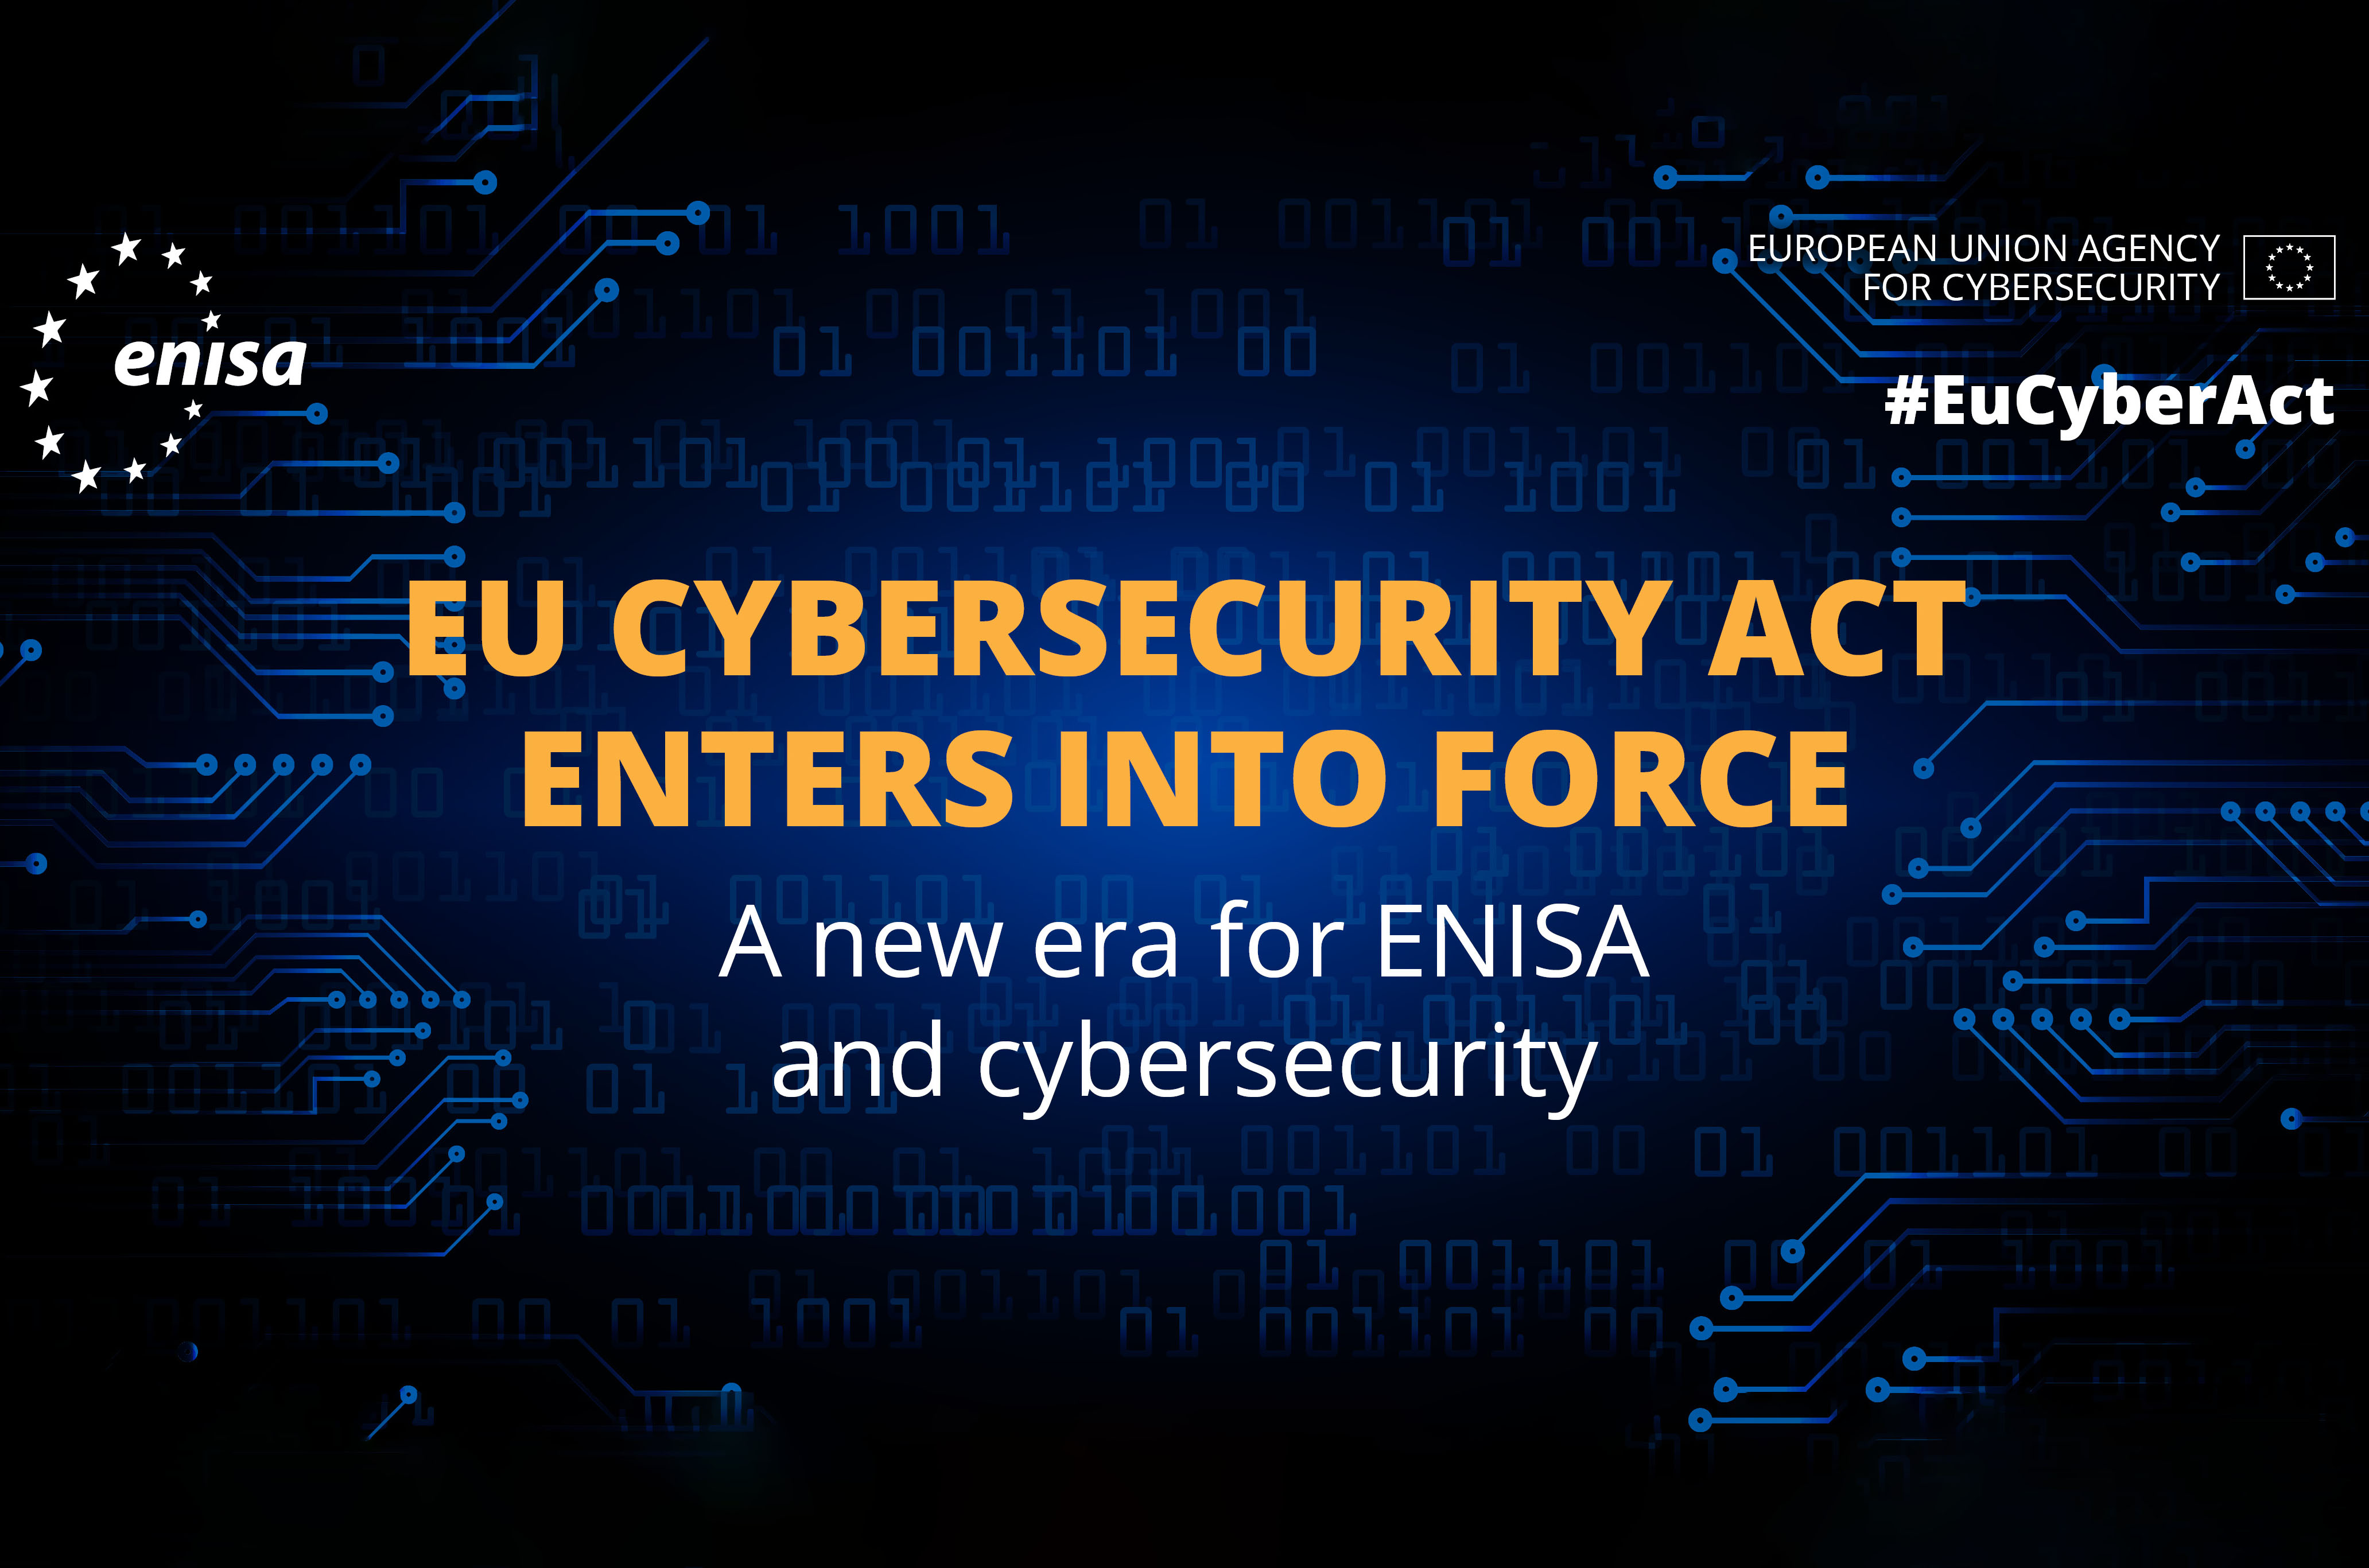 The European Union Agency for Cybersecurity - A new chapter